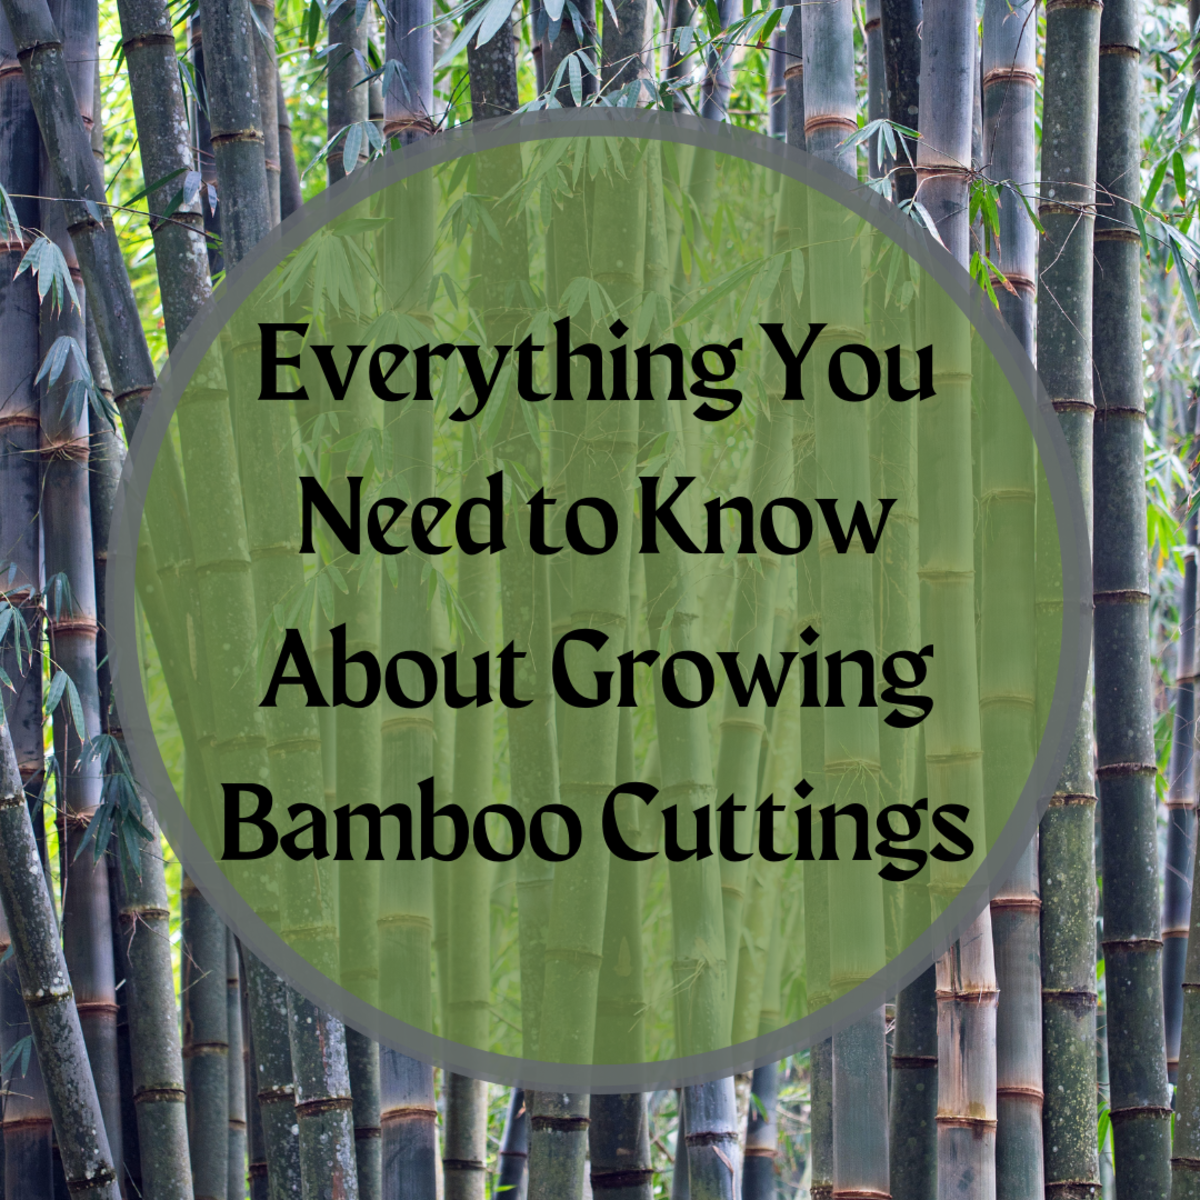 Learn three methods of bamboo cuttings: root mass divisions, rhizome cuttings, and culm burial. This article explains the tools and varying moisture and soil requirements for each method.